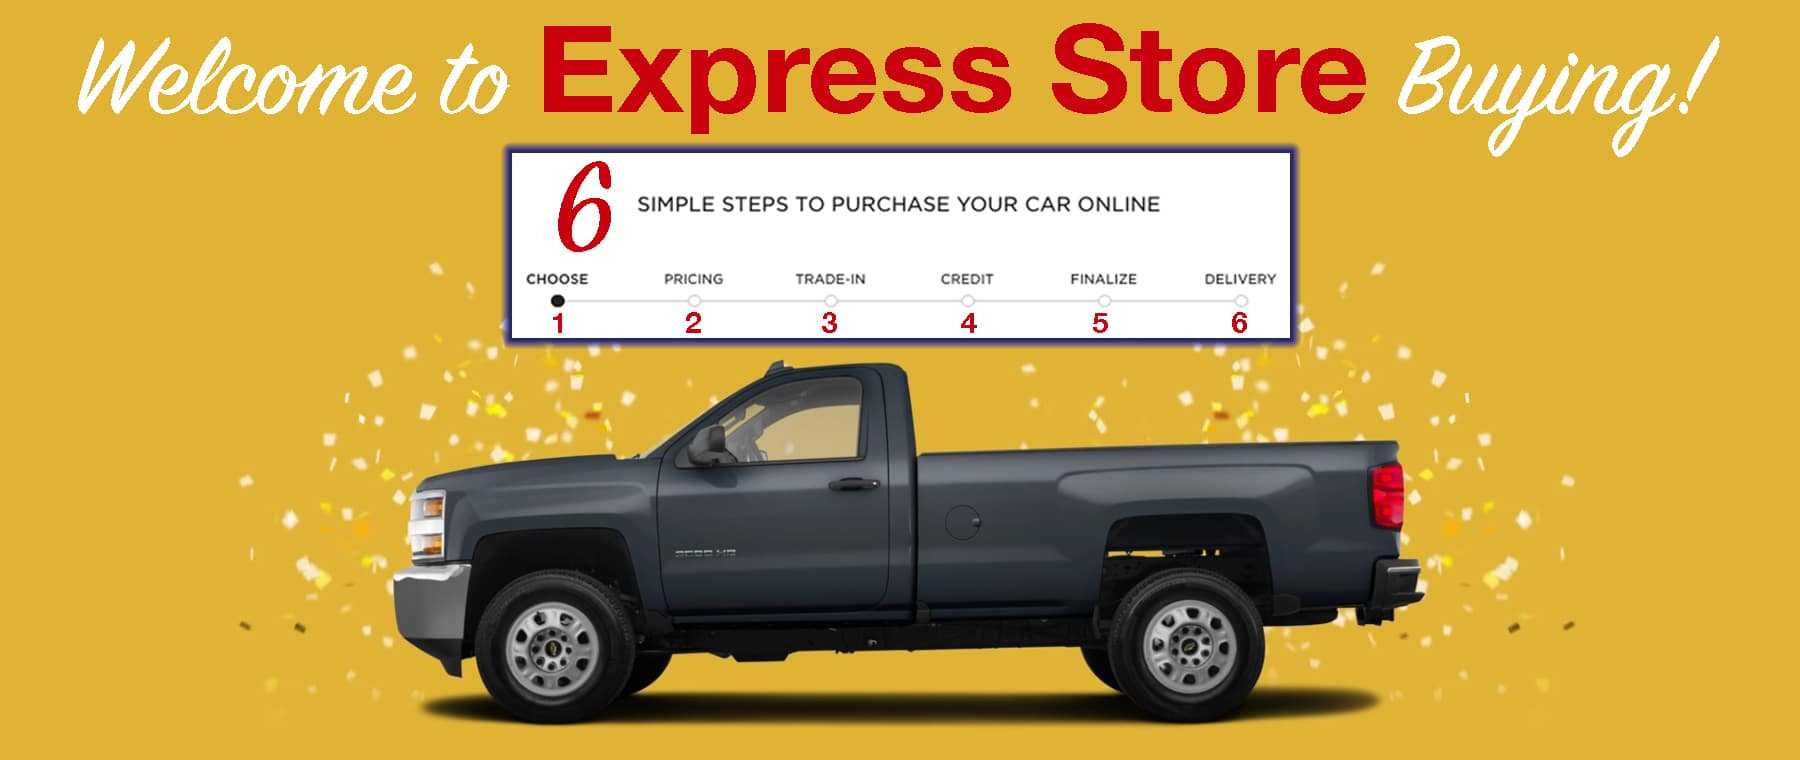 Shaheen Express Store car buying made easy!